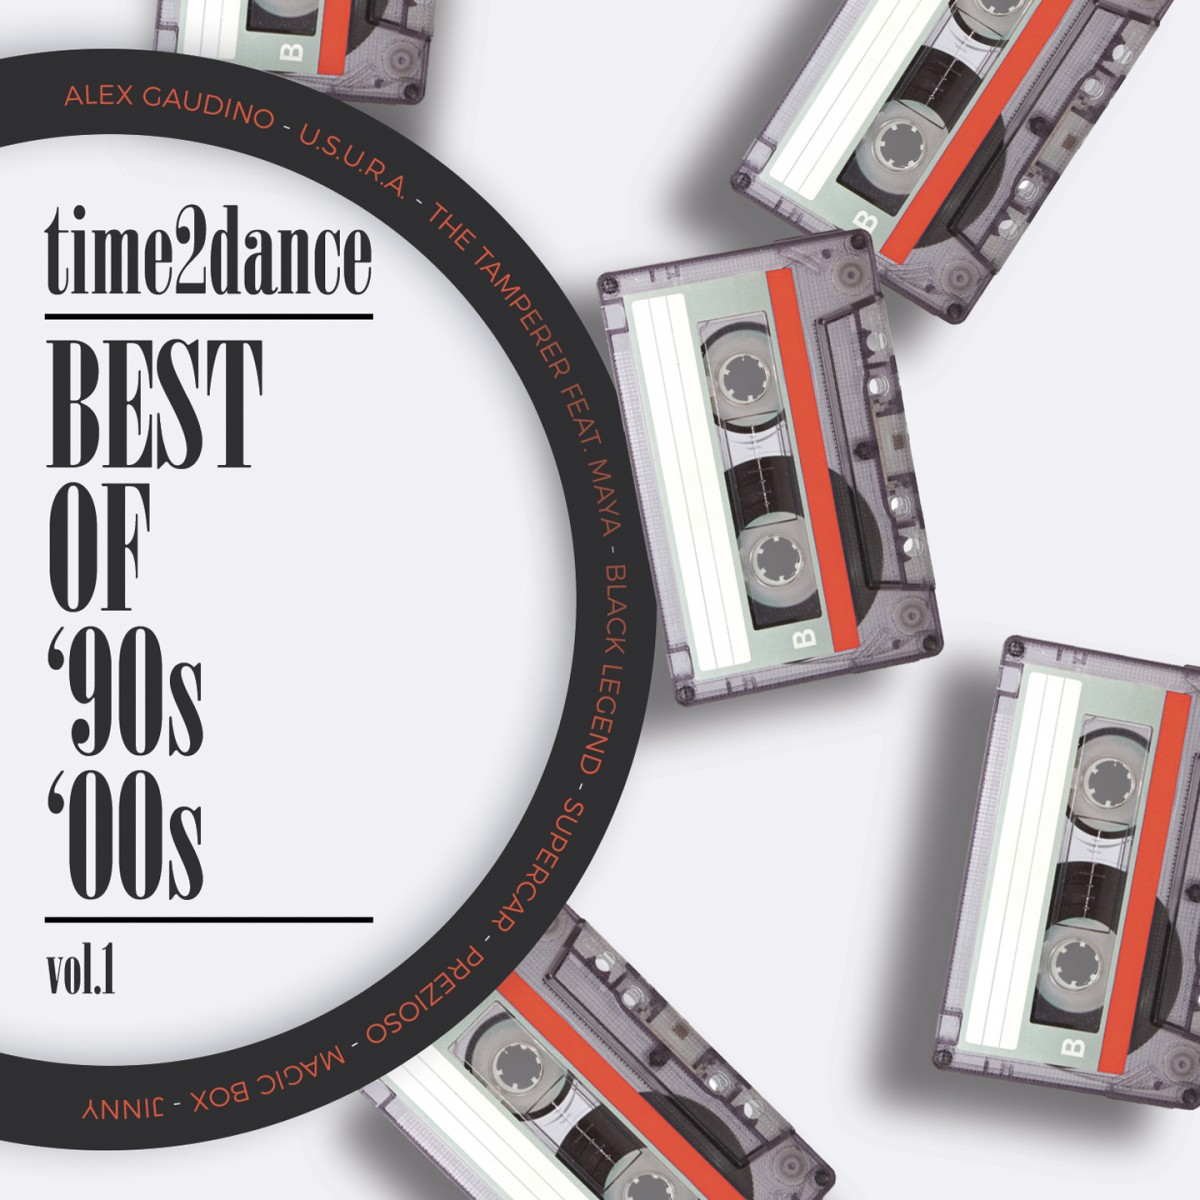 TIME2DANCE: BEST OF '90s - '00s Vol.1